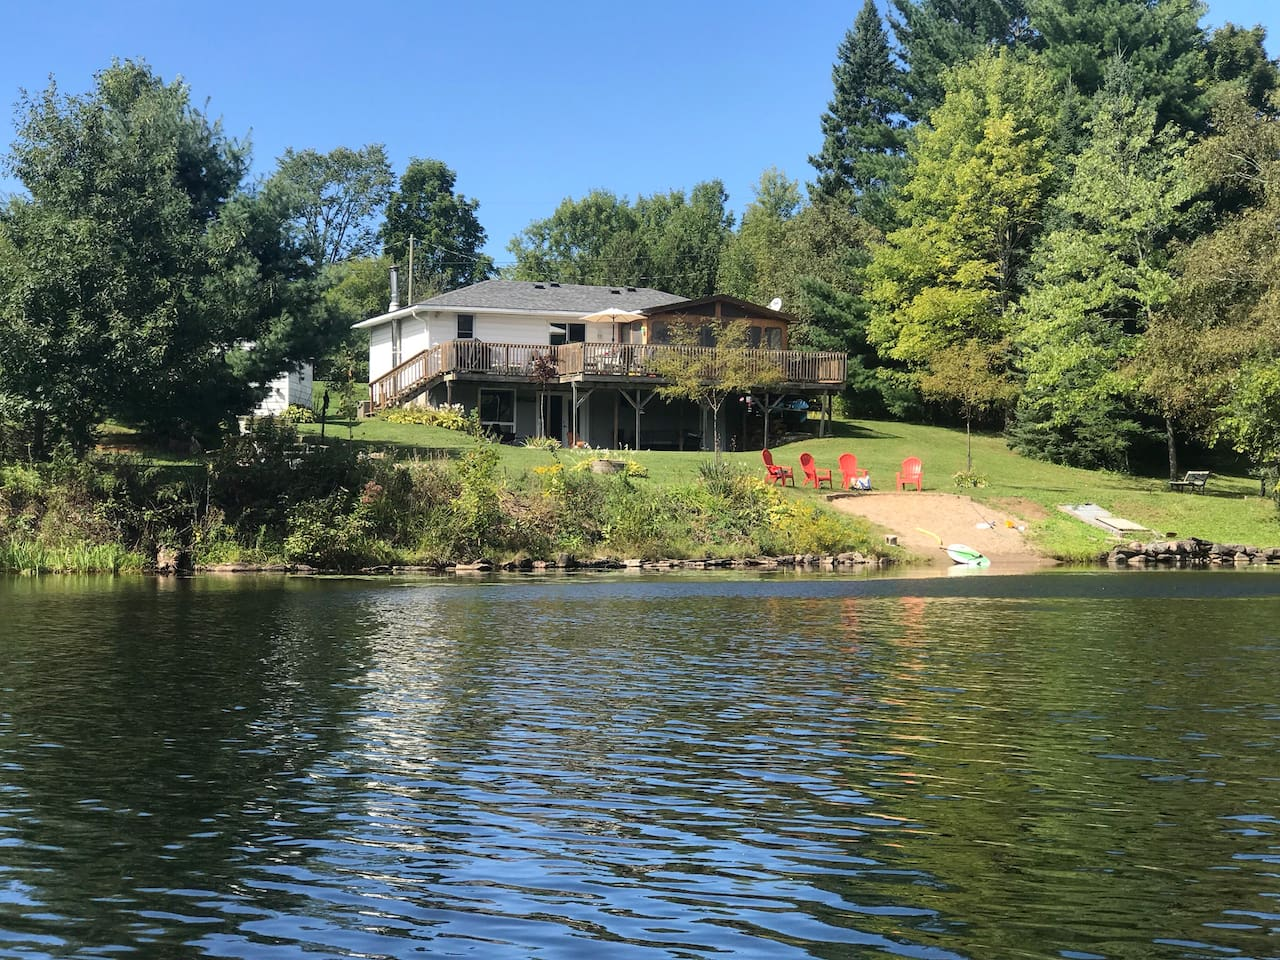 Our Little House on Crowe River